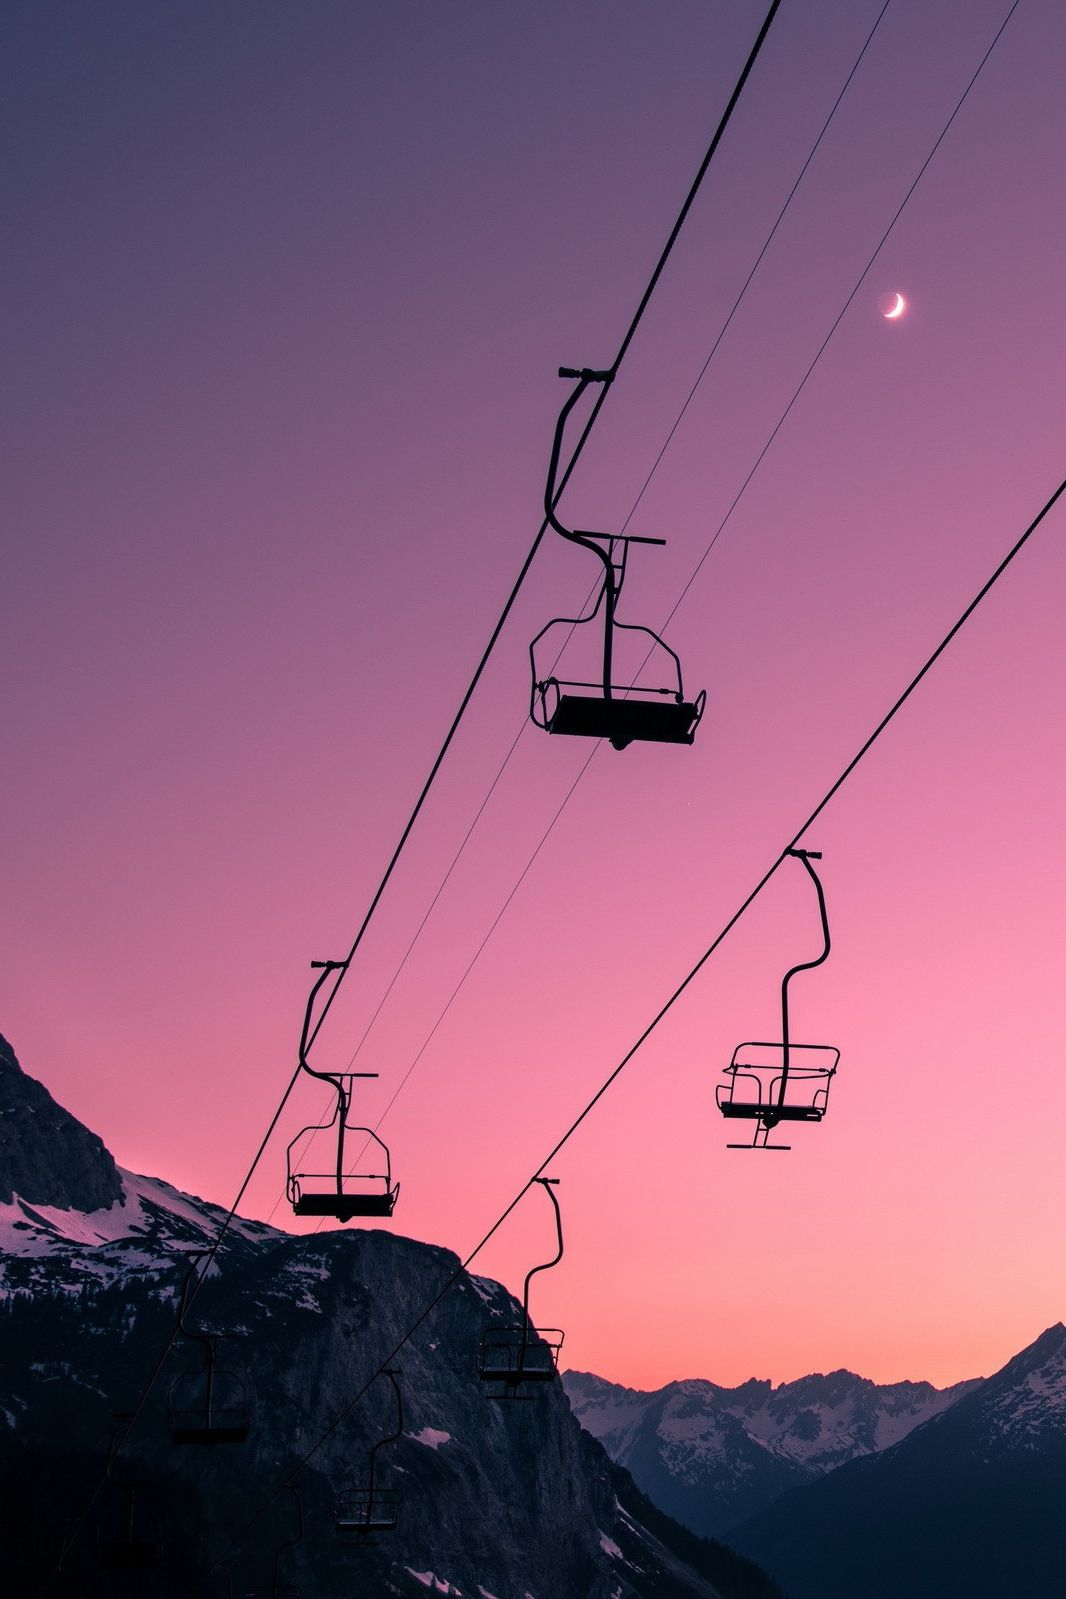 sunset with chair lift